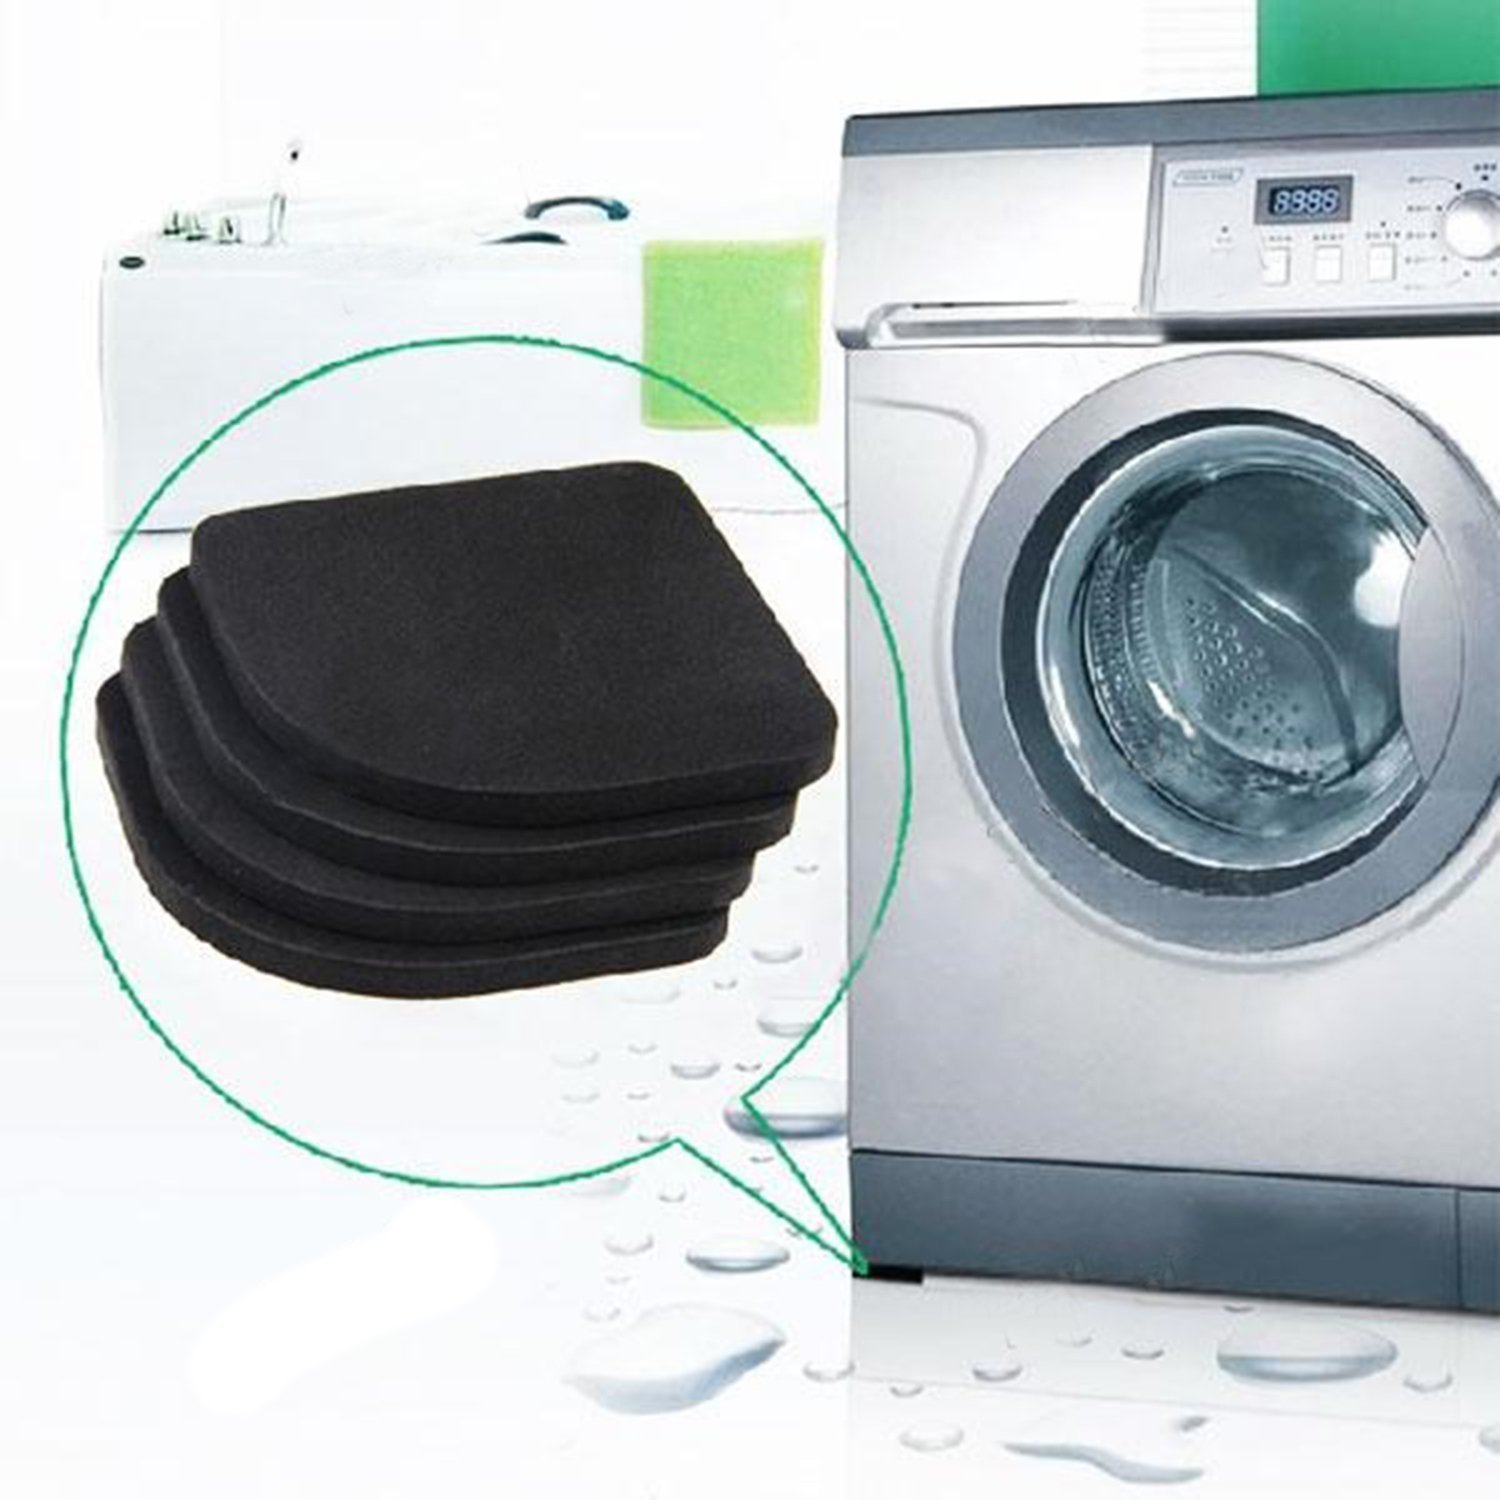 Anti-Vibration Pads-Washer & Dryer Pads